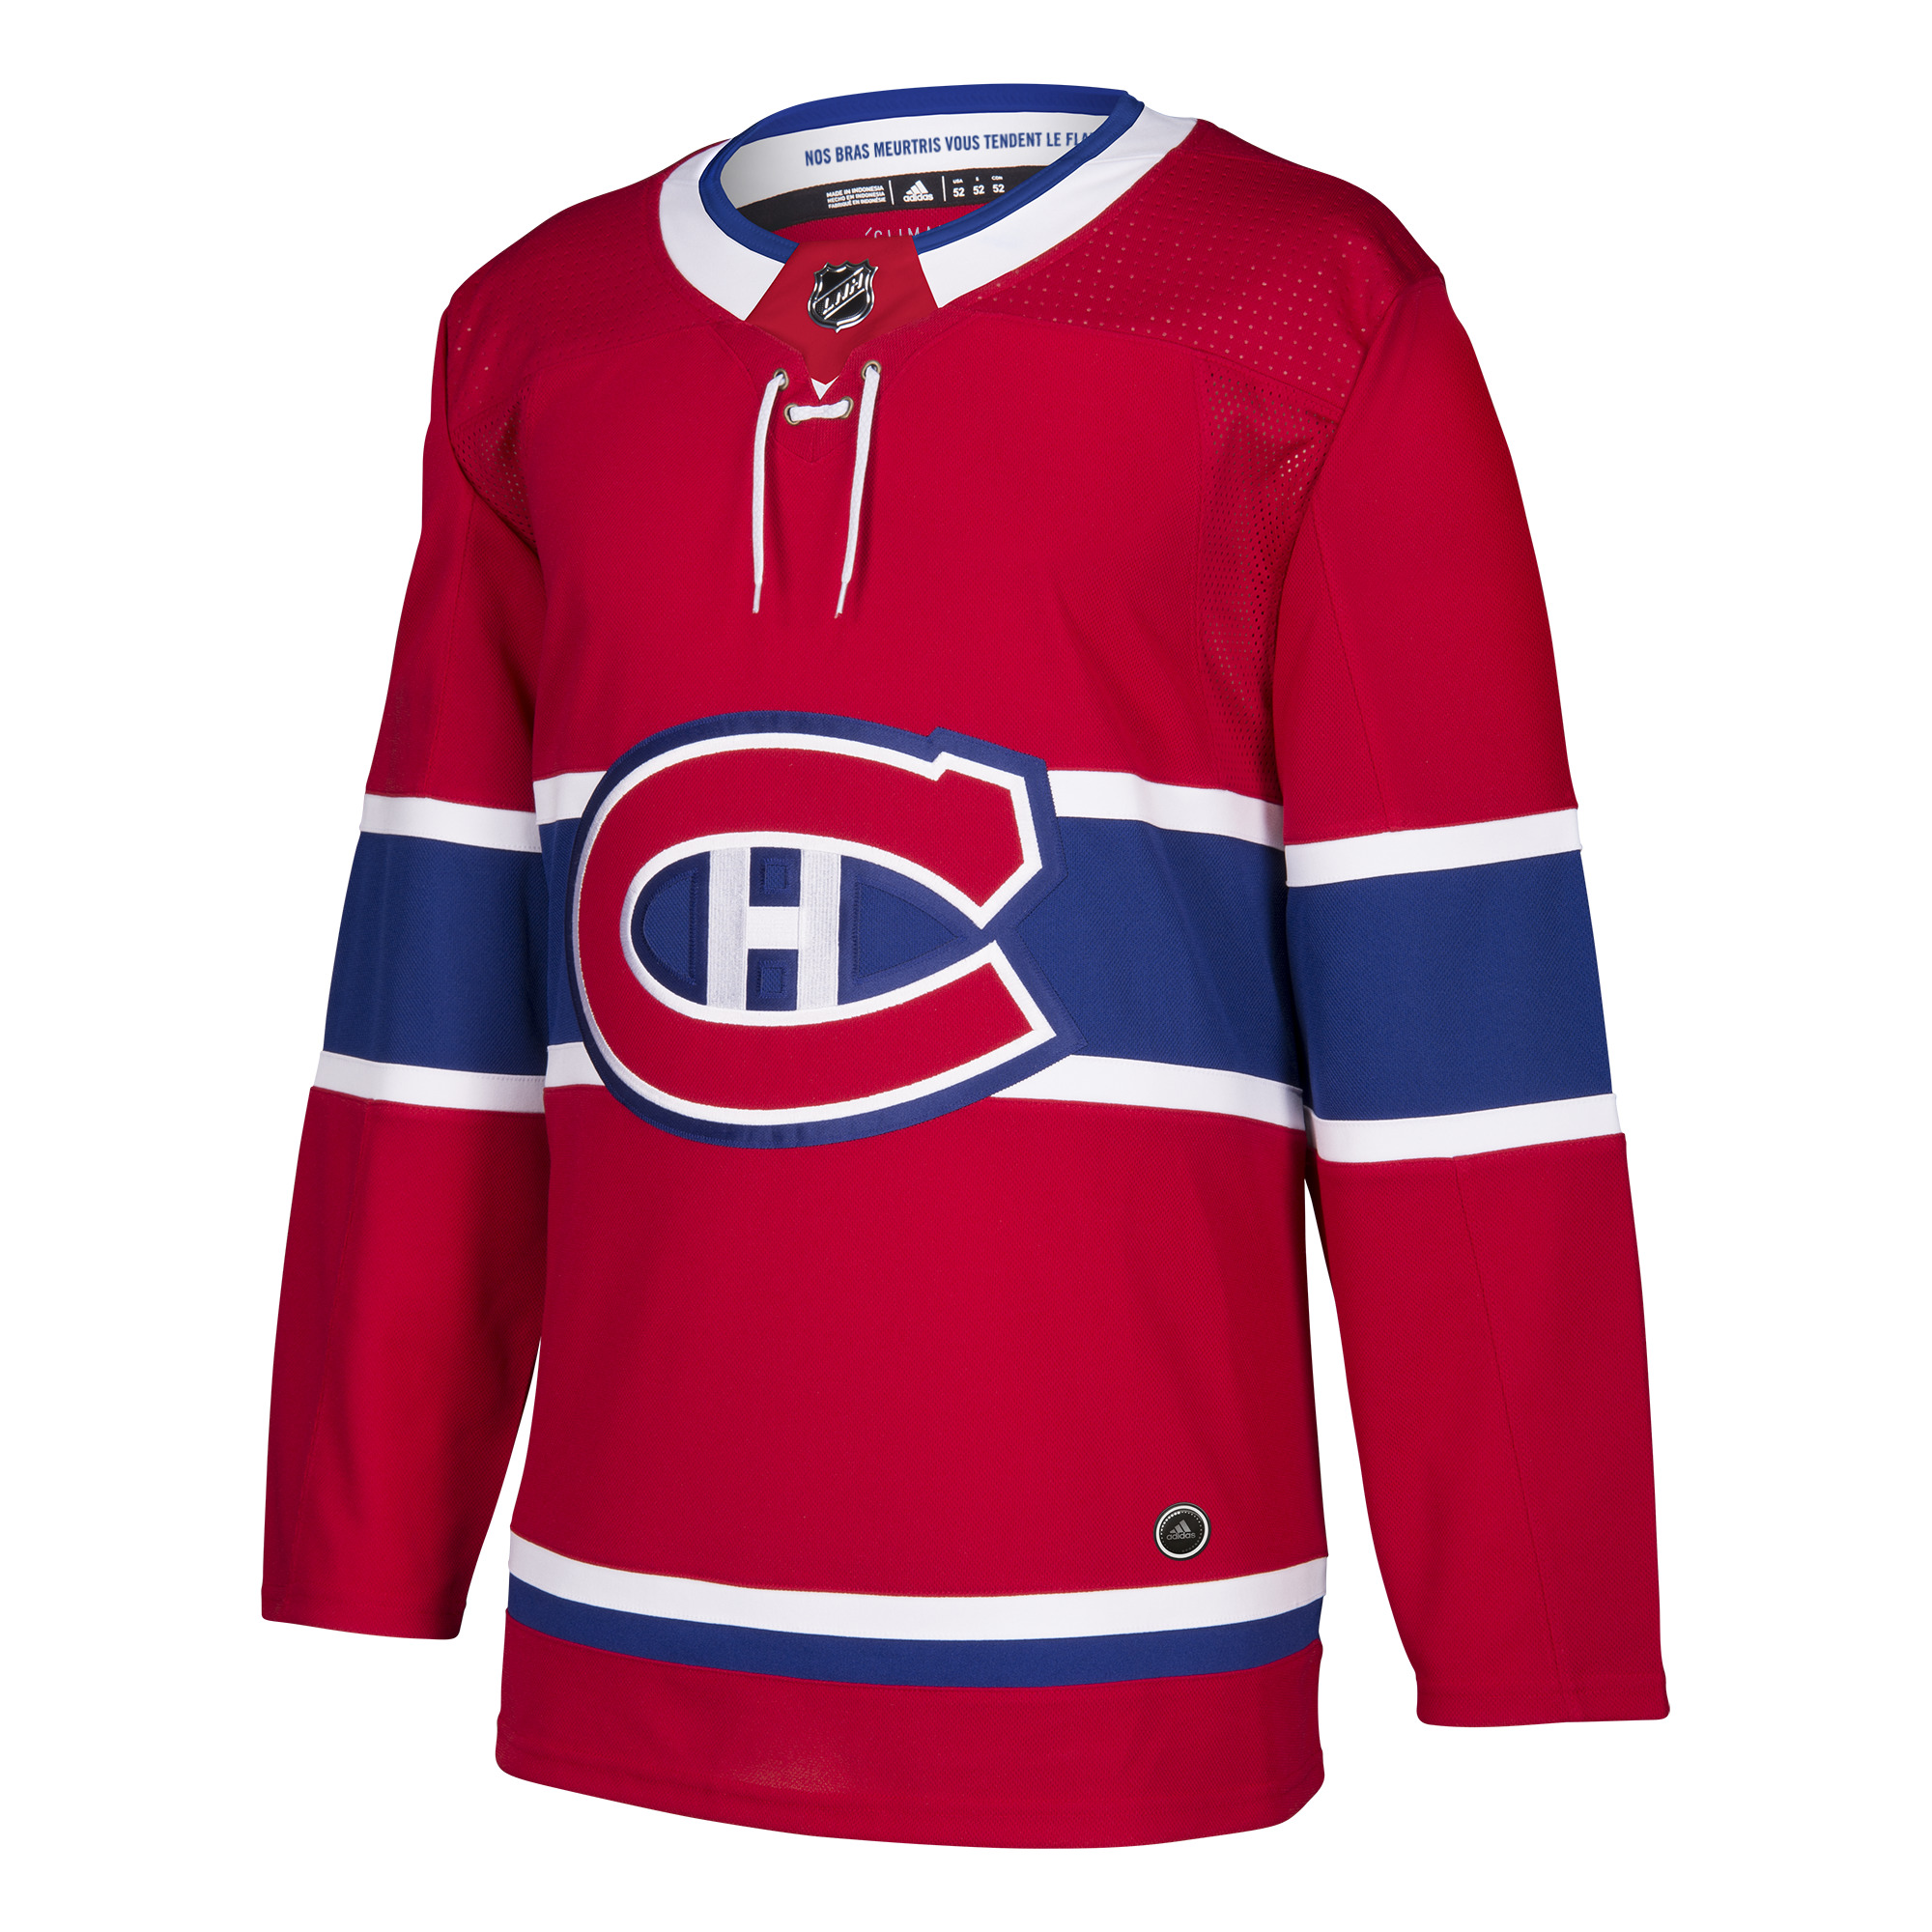 Montreal Canadiens Adidas NHL Men's Climalite Authentic Team Hockey Jersey